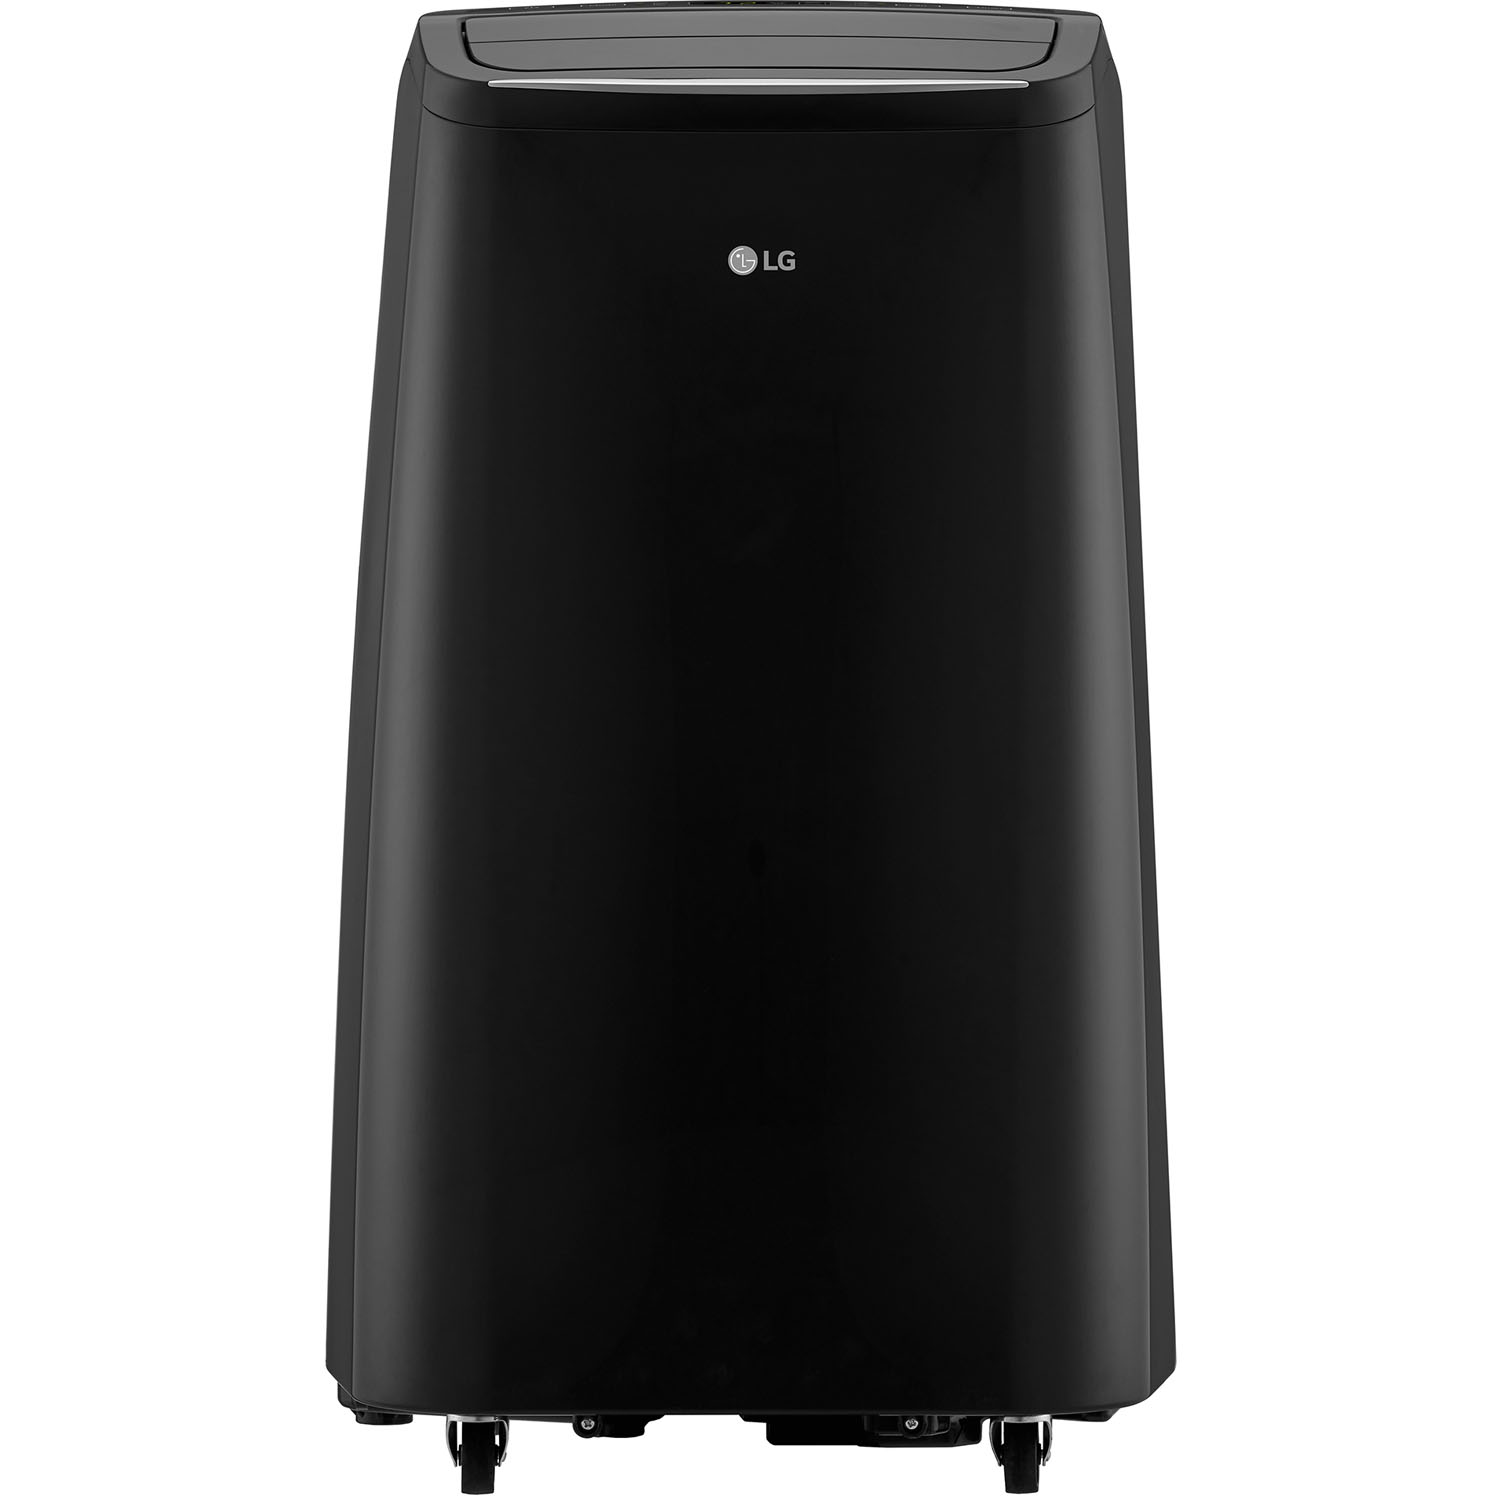 Ft. Certified Refurbished LG LP1417GSR 115V Portable Air Conditioner with Remote Control in Graphite Gray for Rooms up to 400-Sq